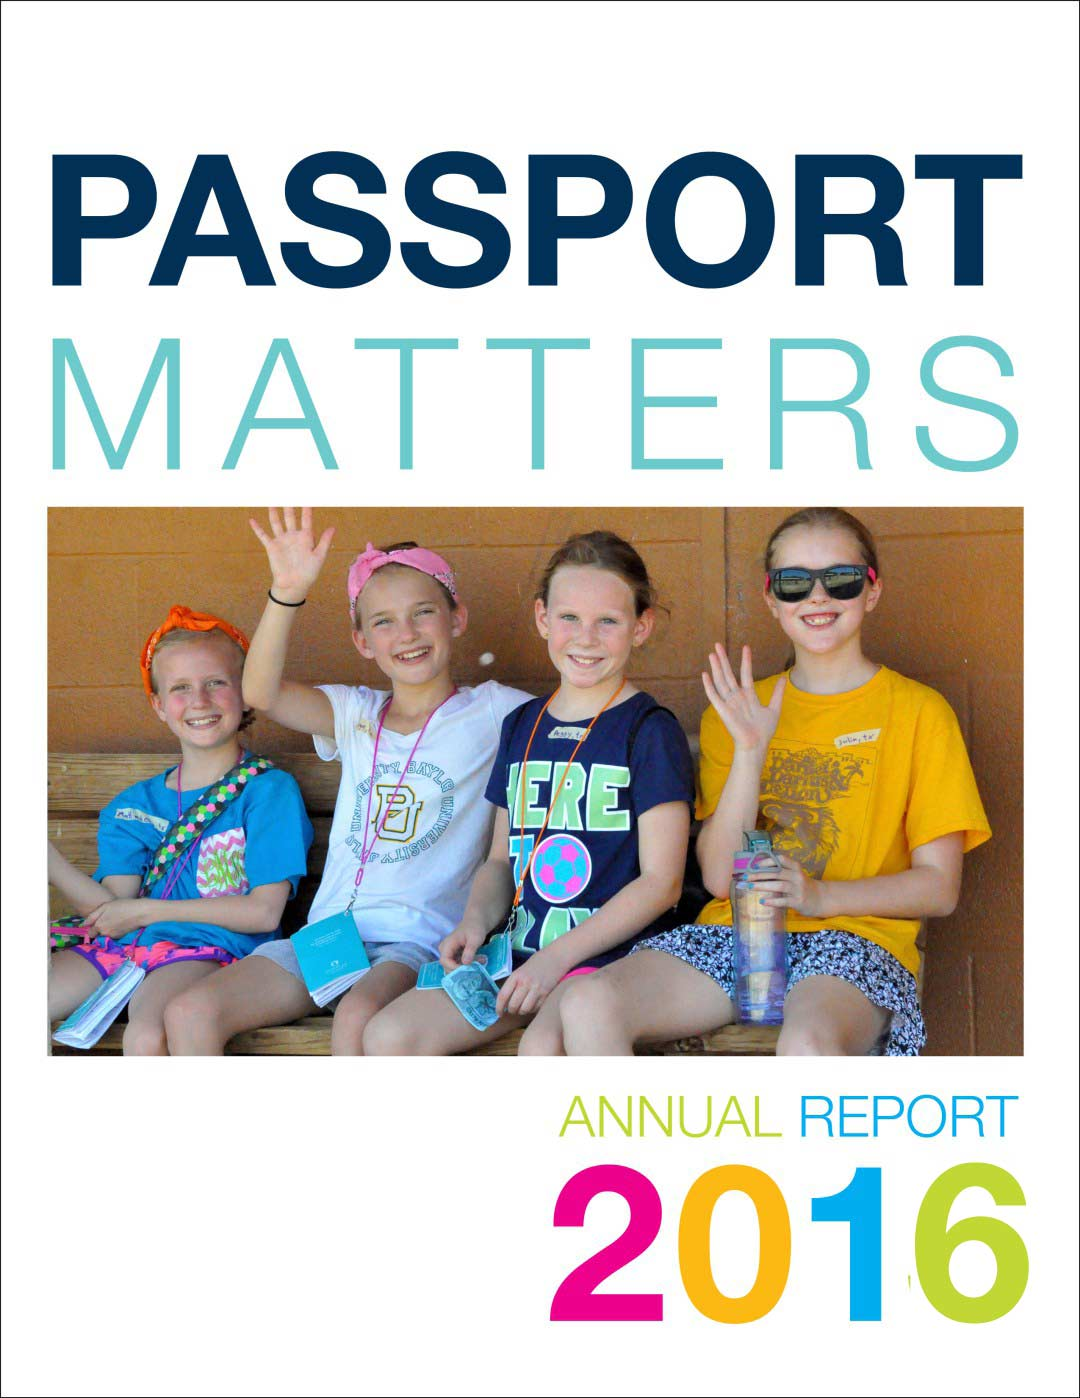 PASSPORT 2014 Annual Report